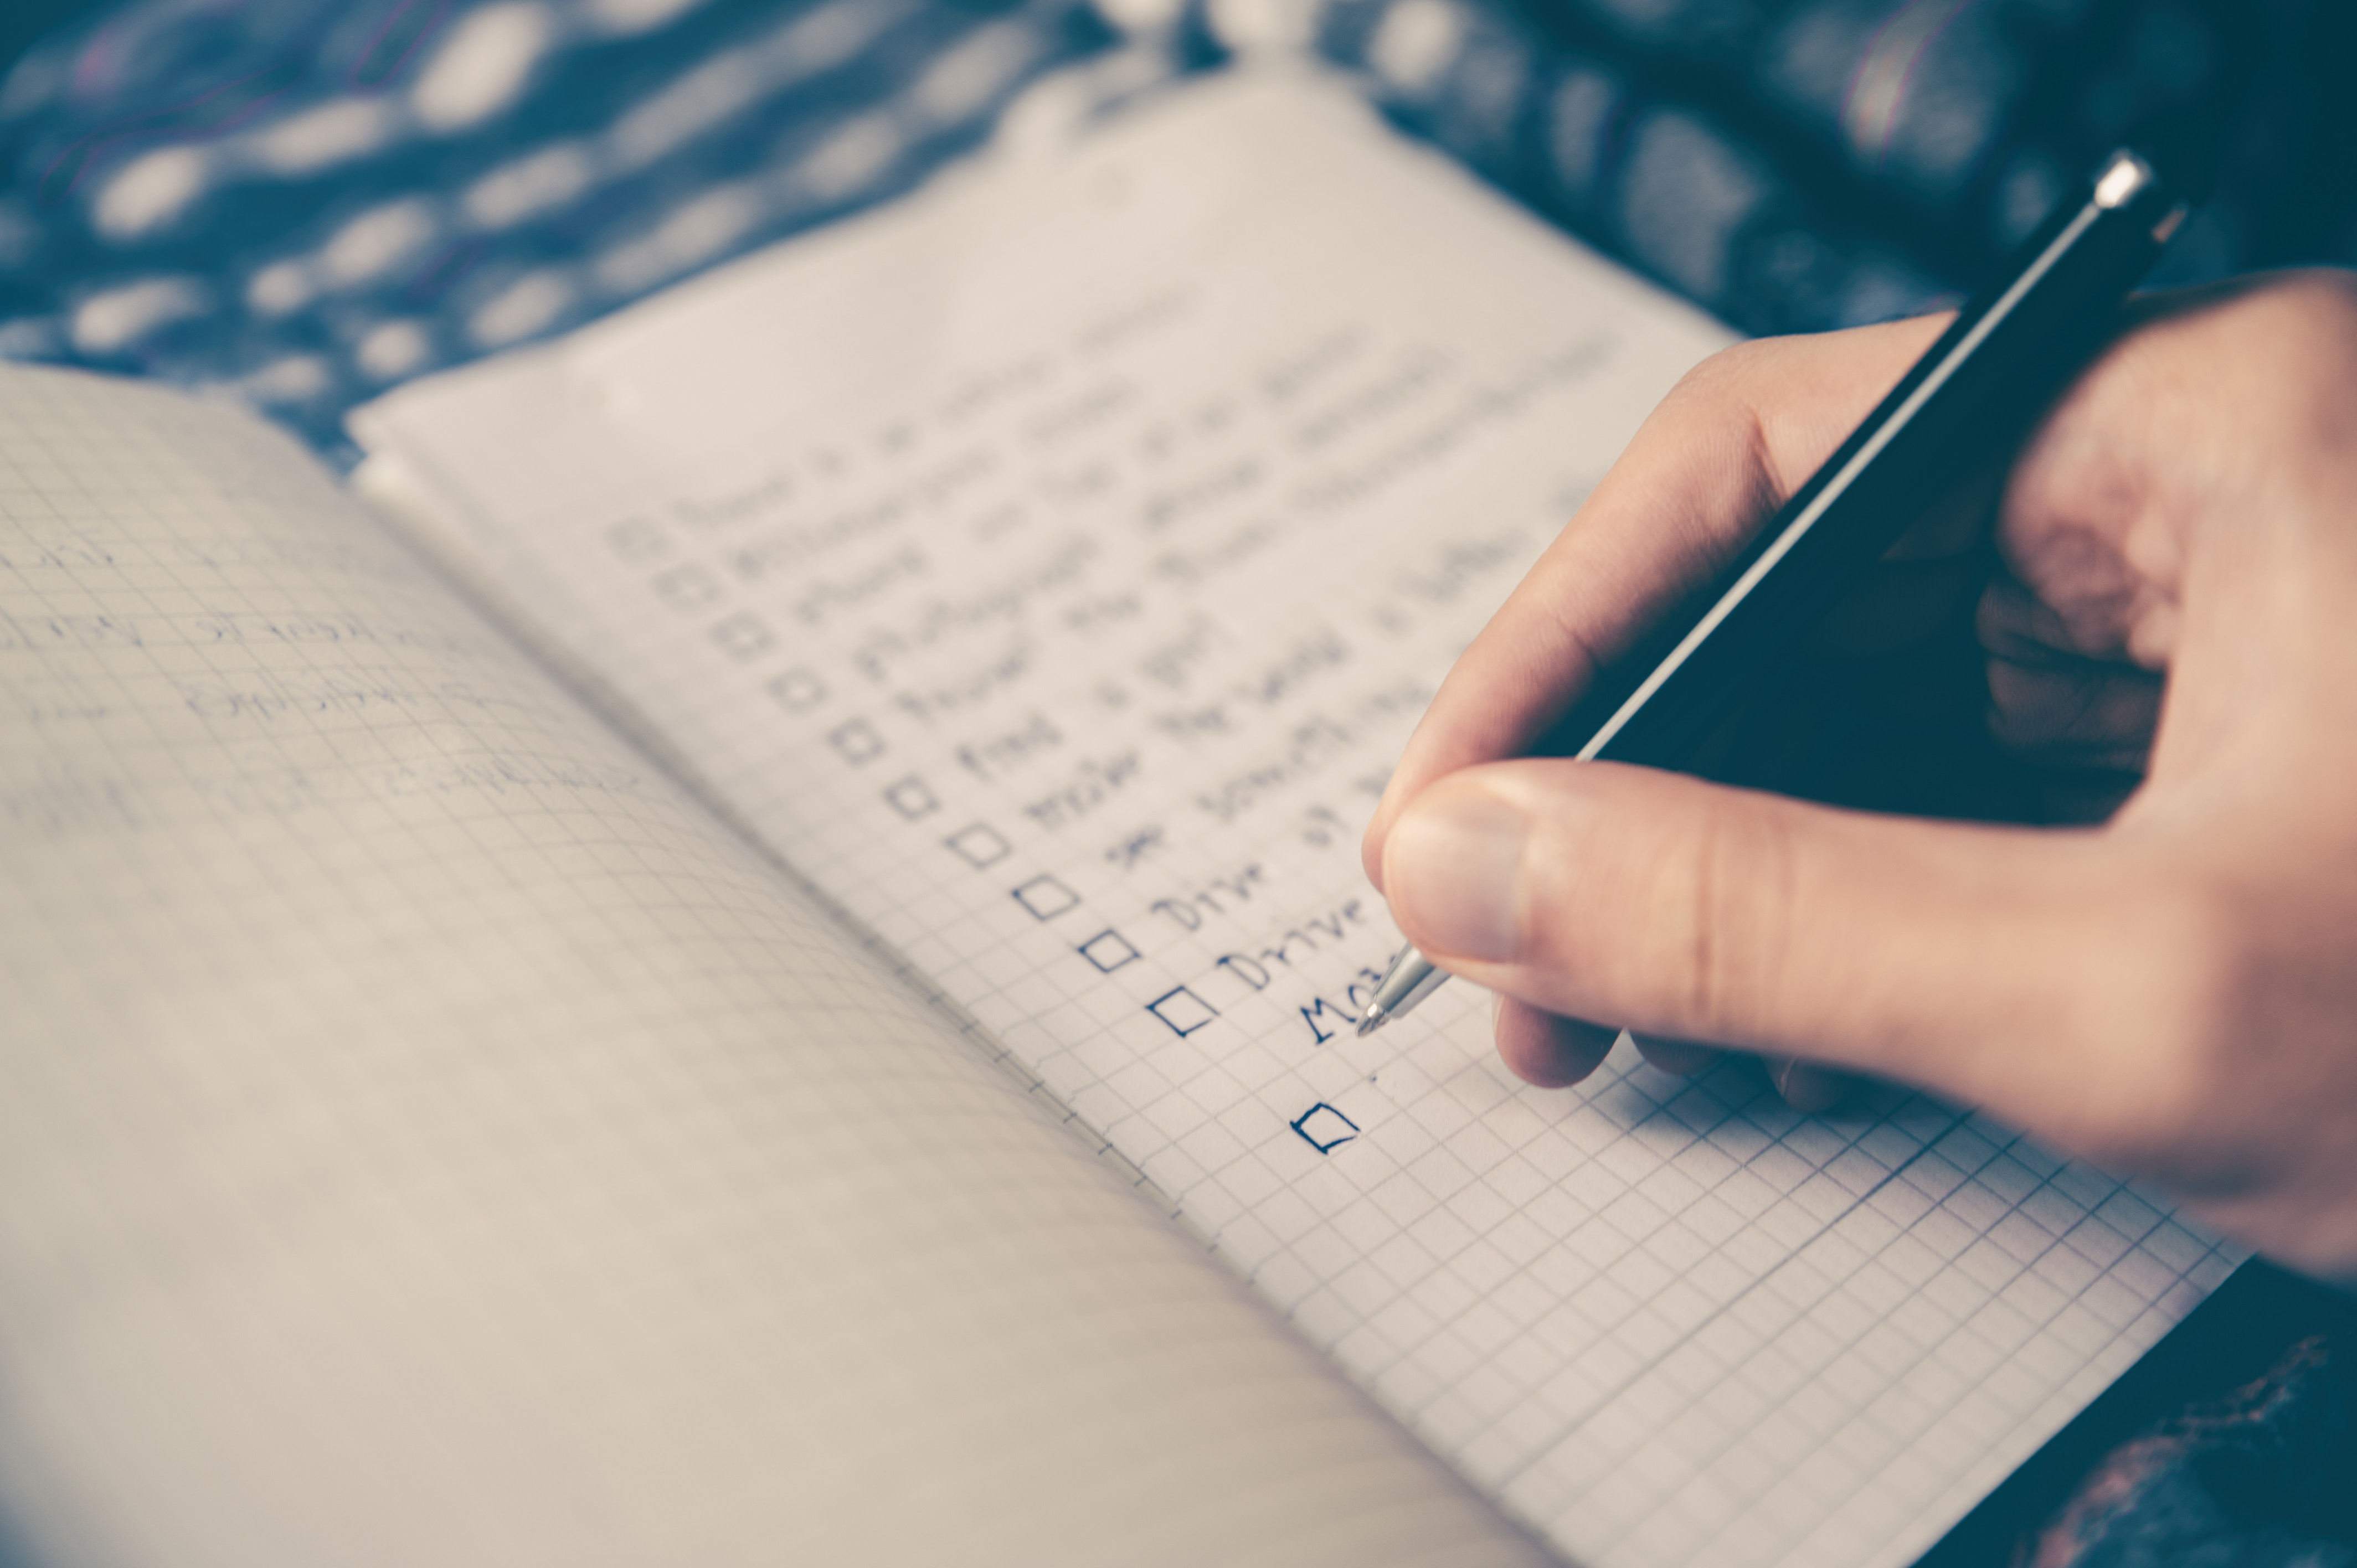 Photo by Glenn Carstens-Peters on Unsplash- Book with a to-do list written in it